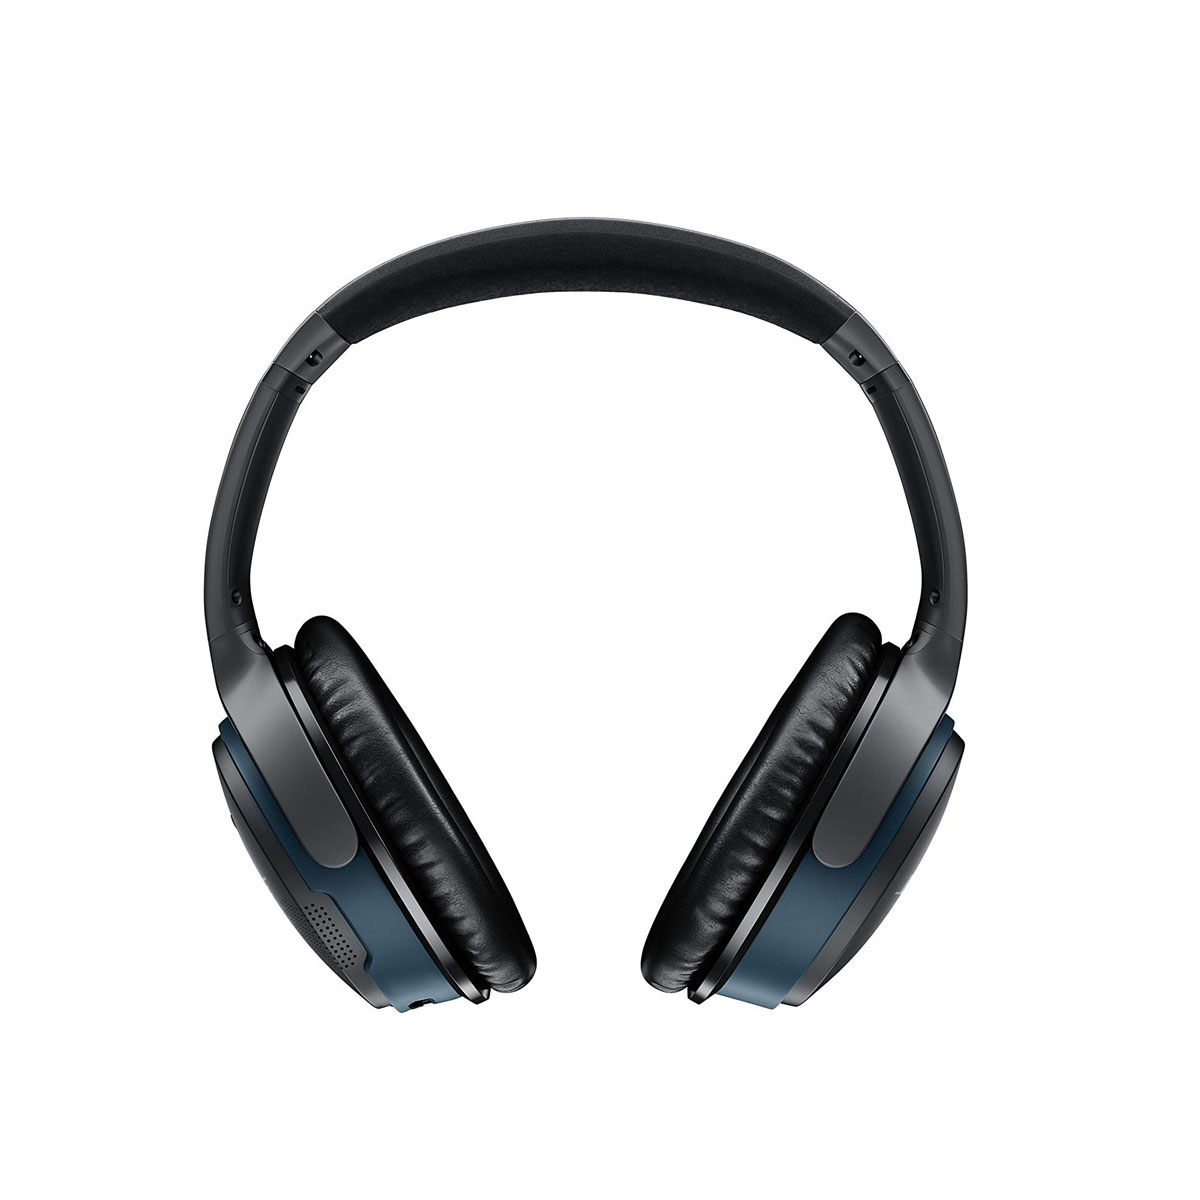 Bose - Soundlink Around-Ear Wireless Headphones II - Black